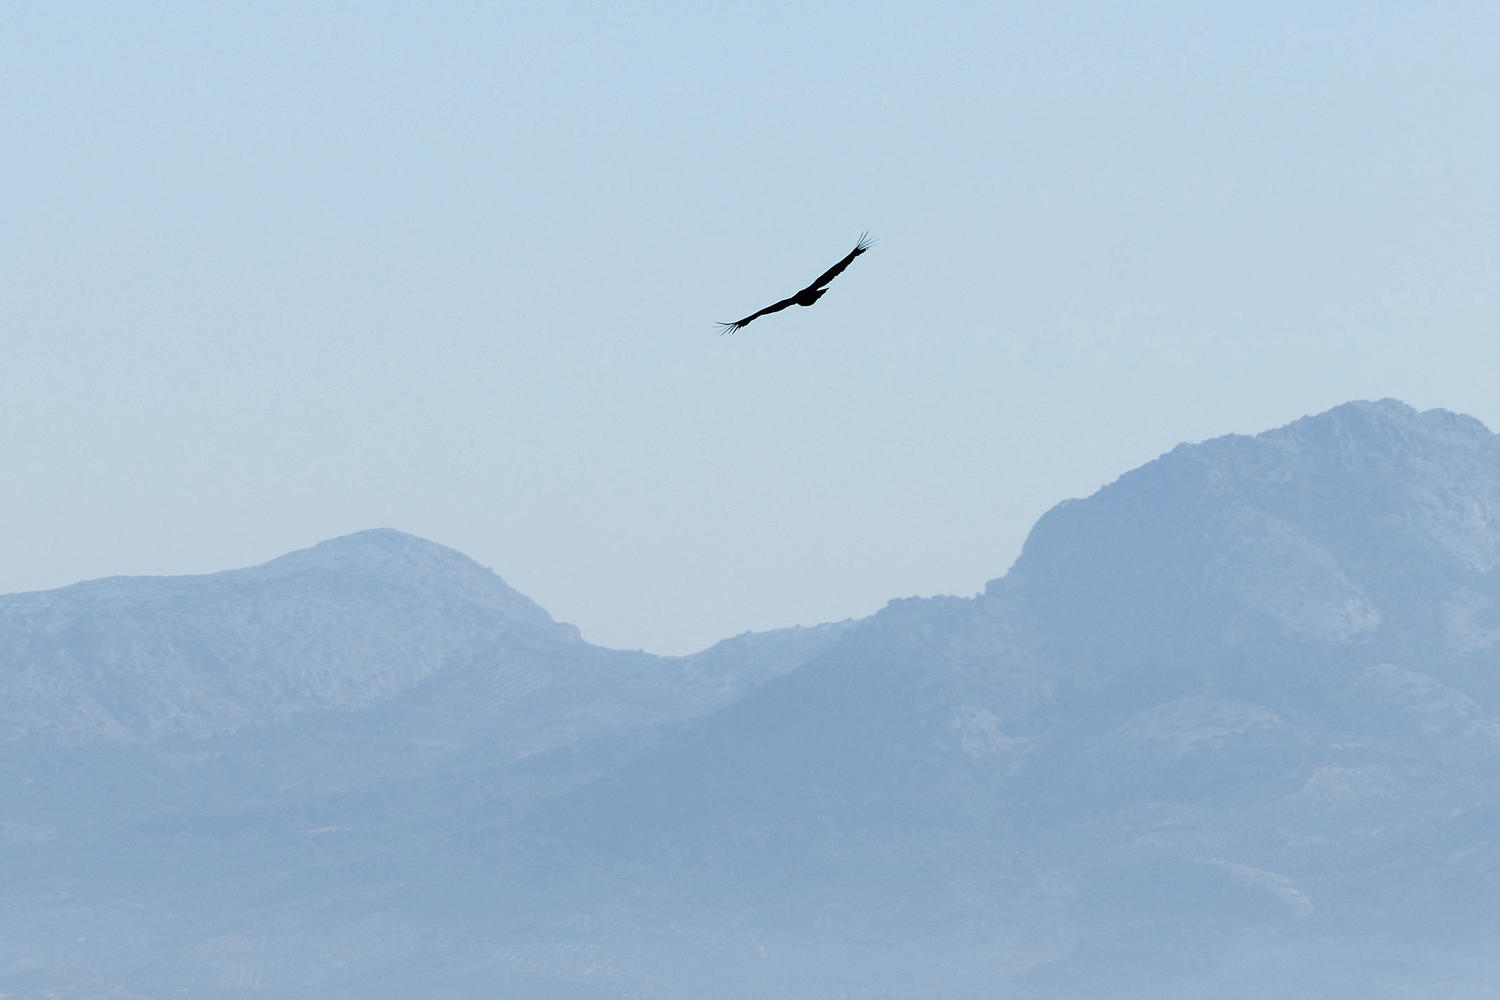 A griffon vulture soars above the hills of the Sierras Subbeticas